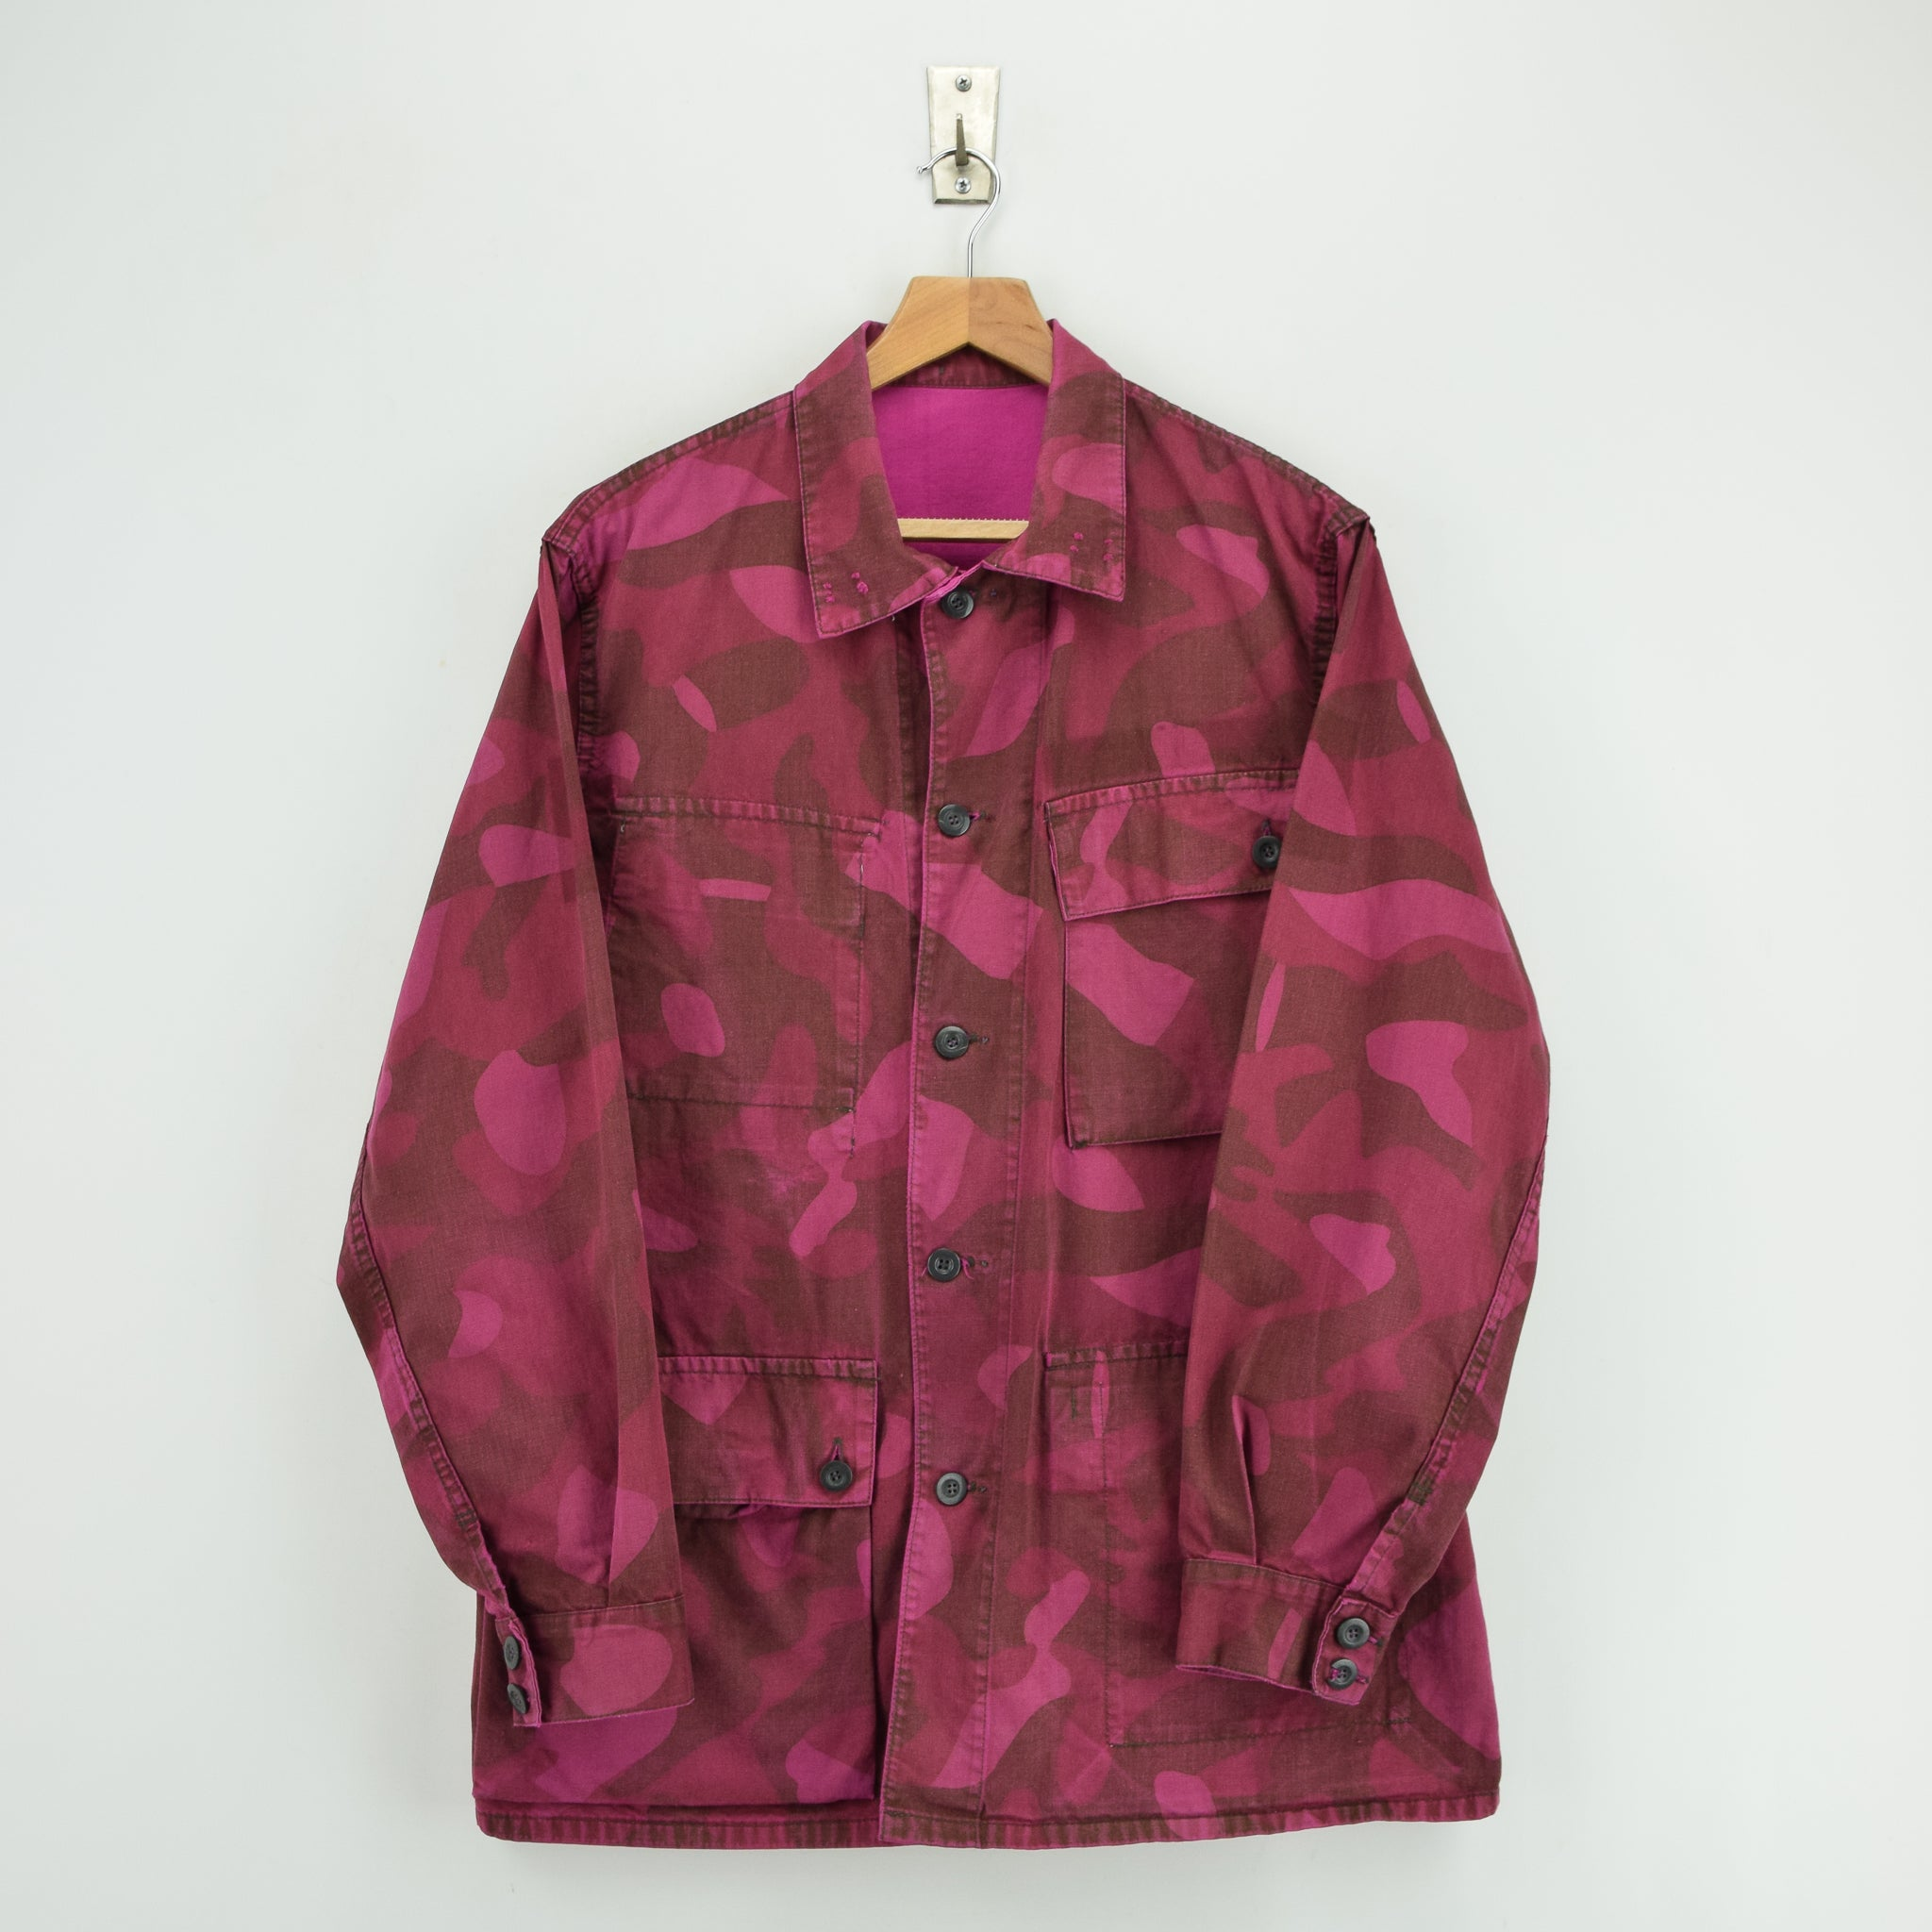 Vintage 70s Military Finnish Army Pink Overdyed Camo Mountain Field Jacket M front